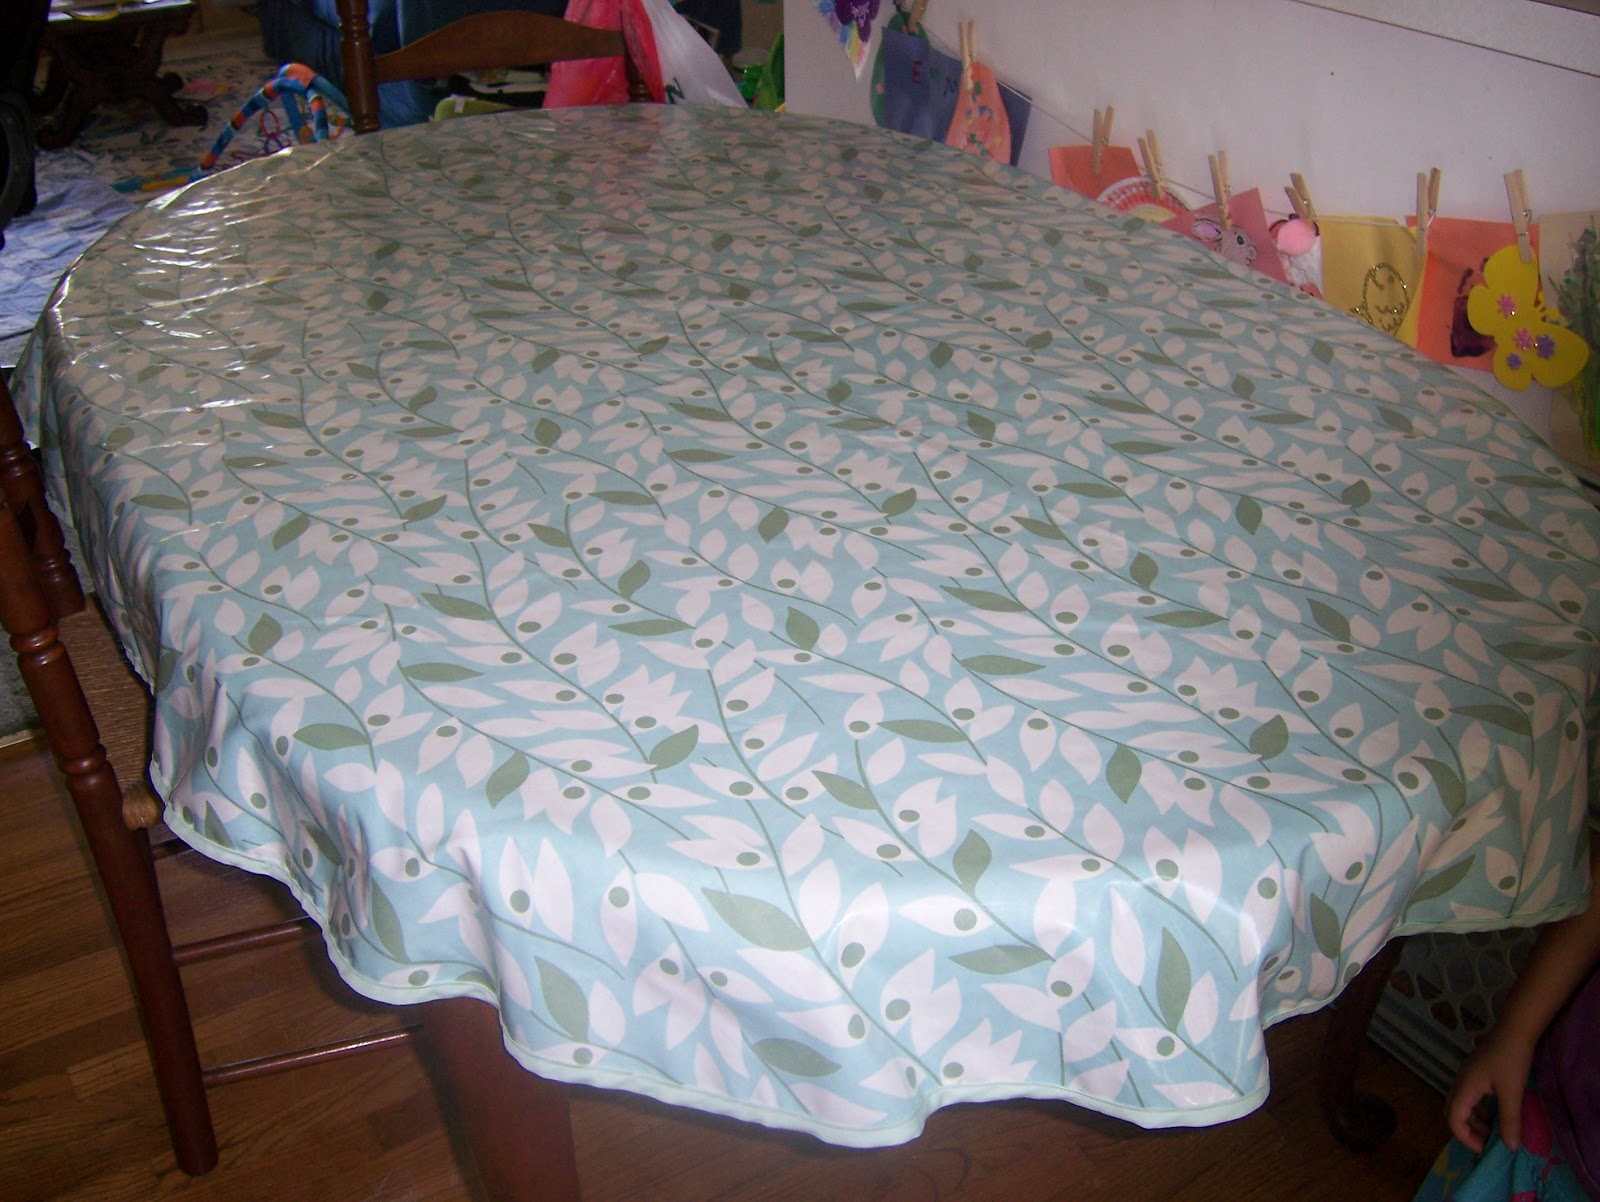 You Now Have A Cute Table Cloth!